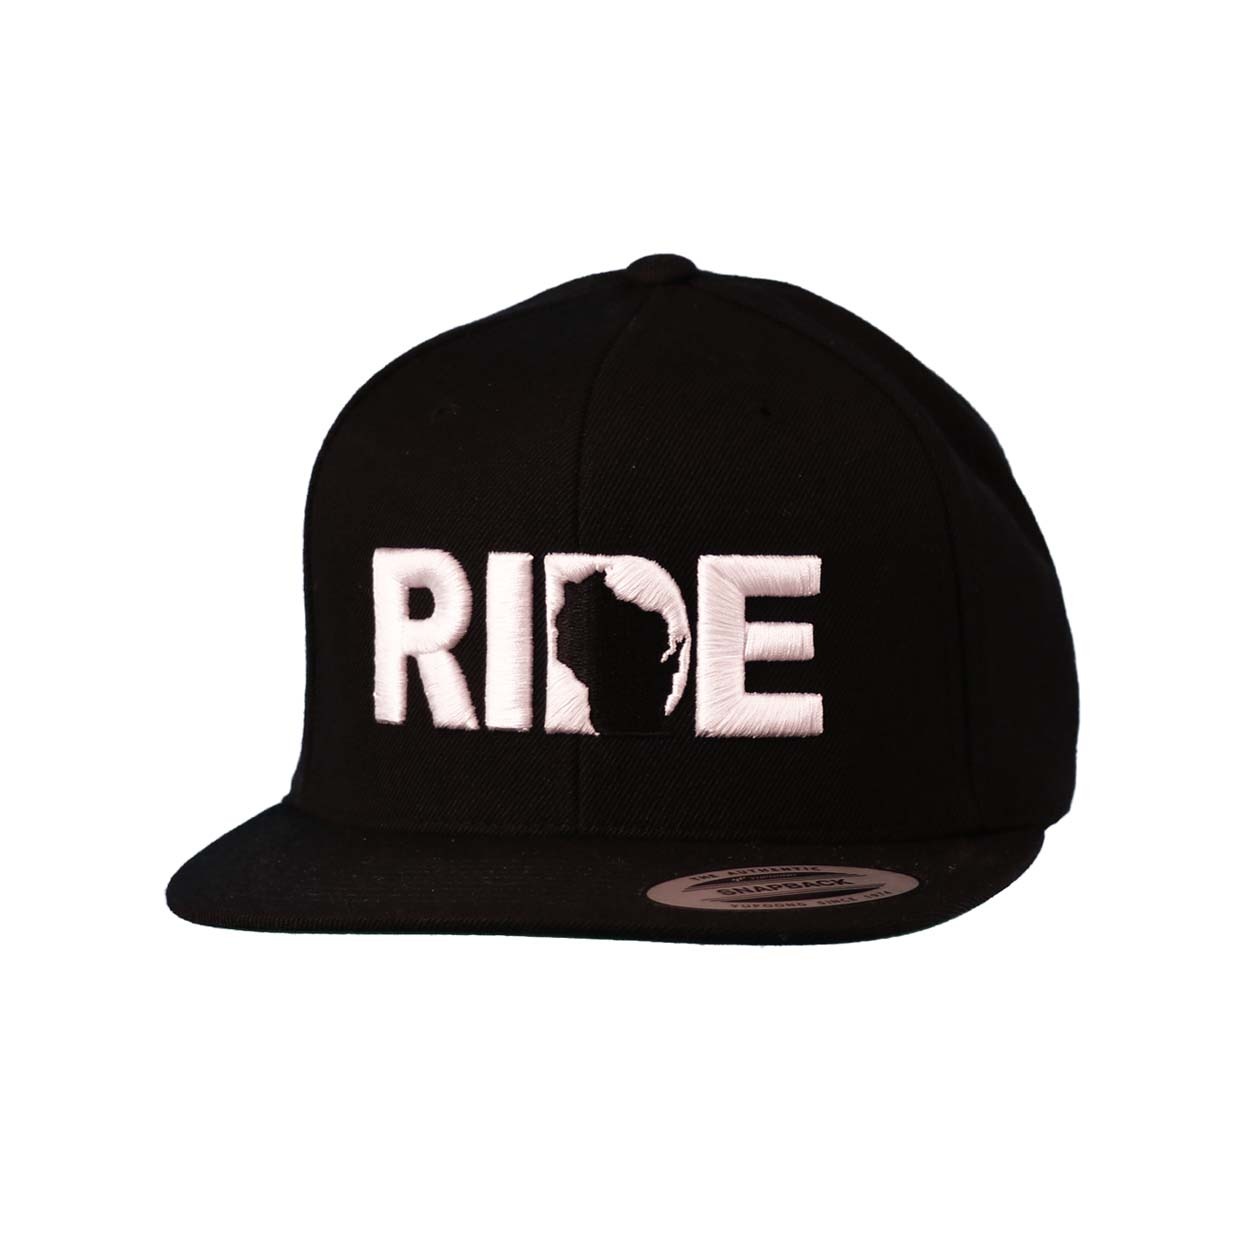 Ride Wisconsin Classic Embroidered  Snapback Flat Brim Hat Black/White